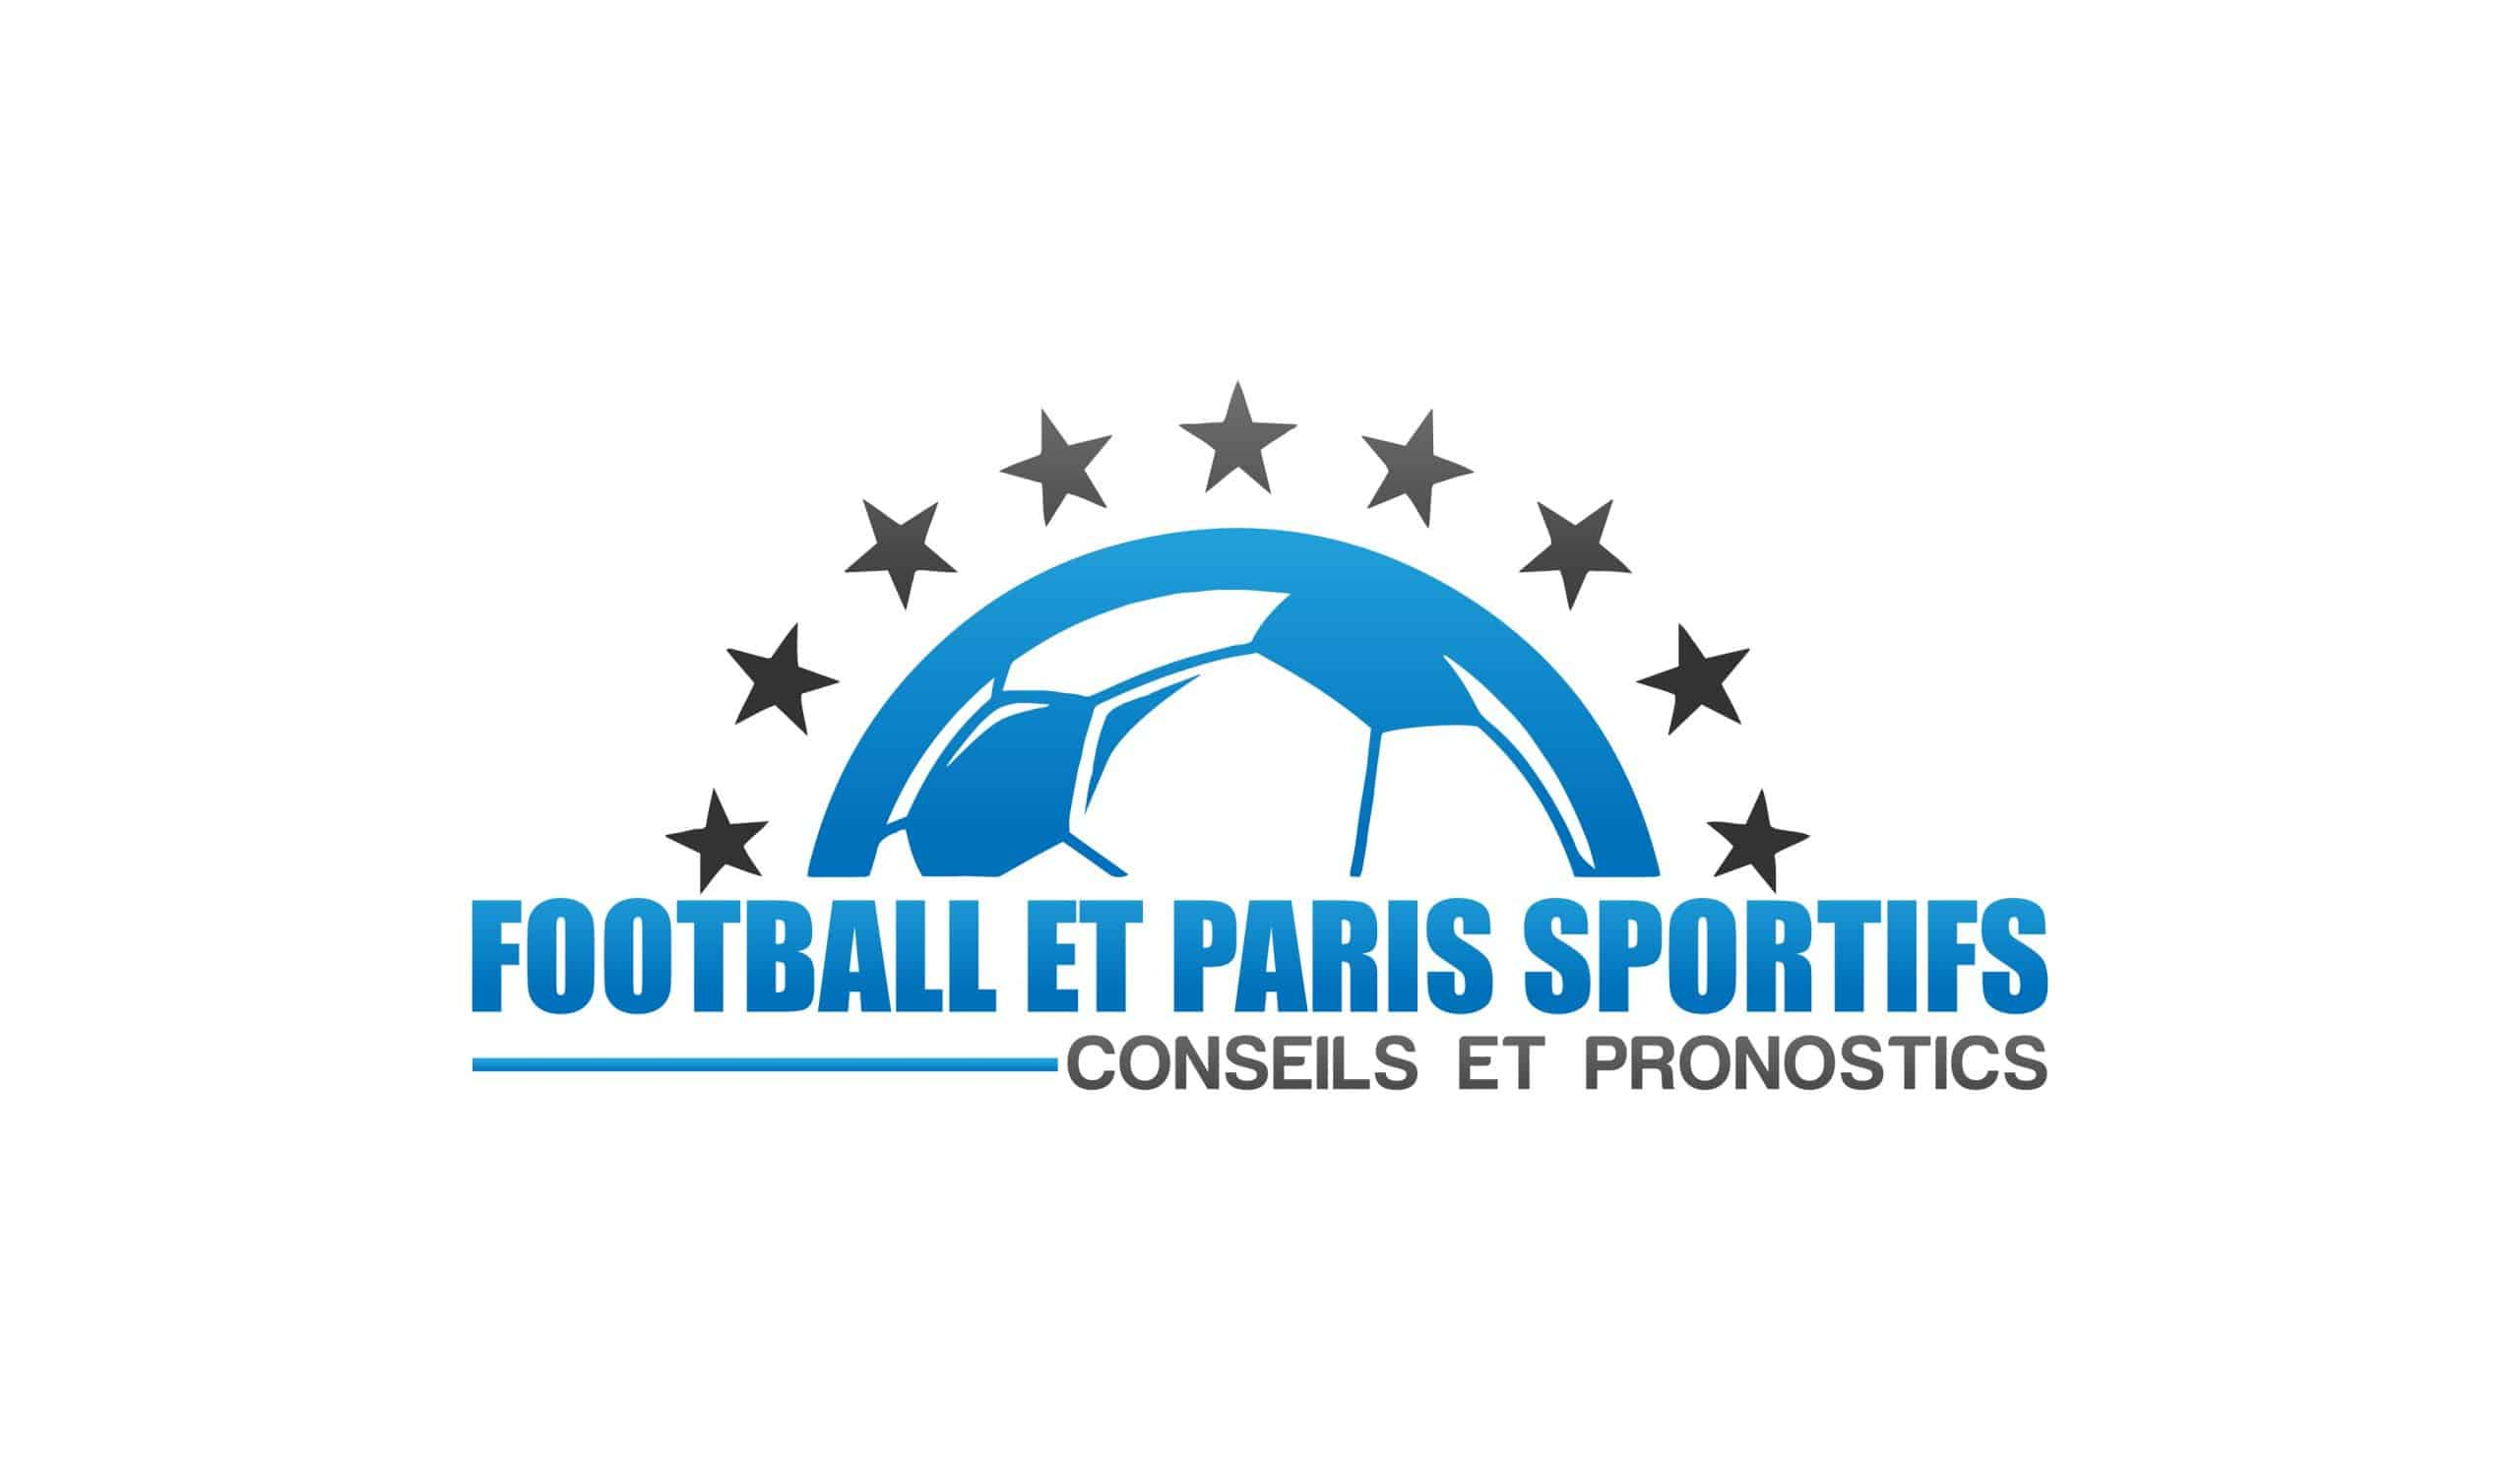 Paris sportifs football